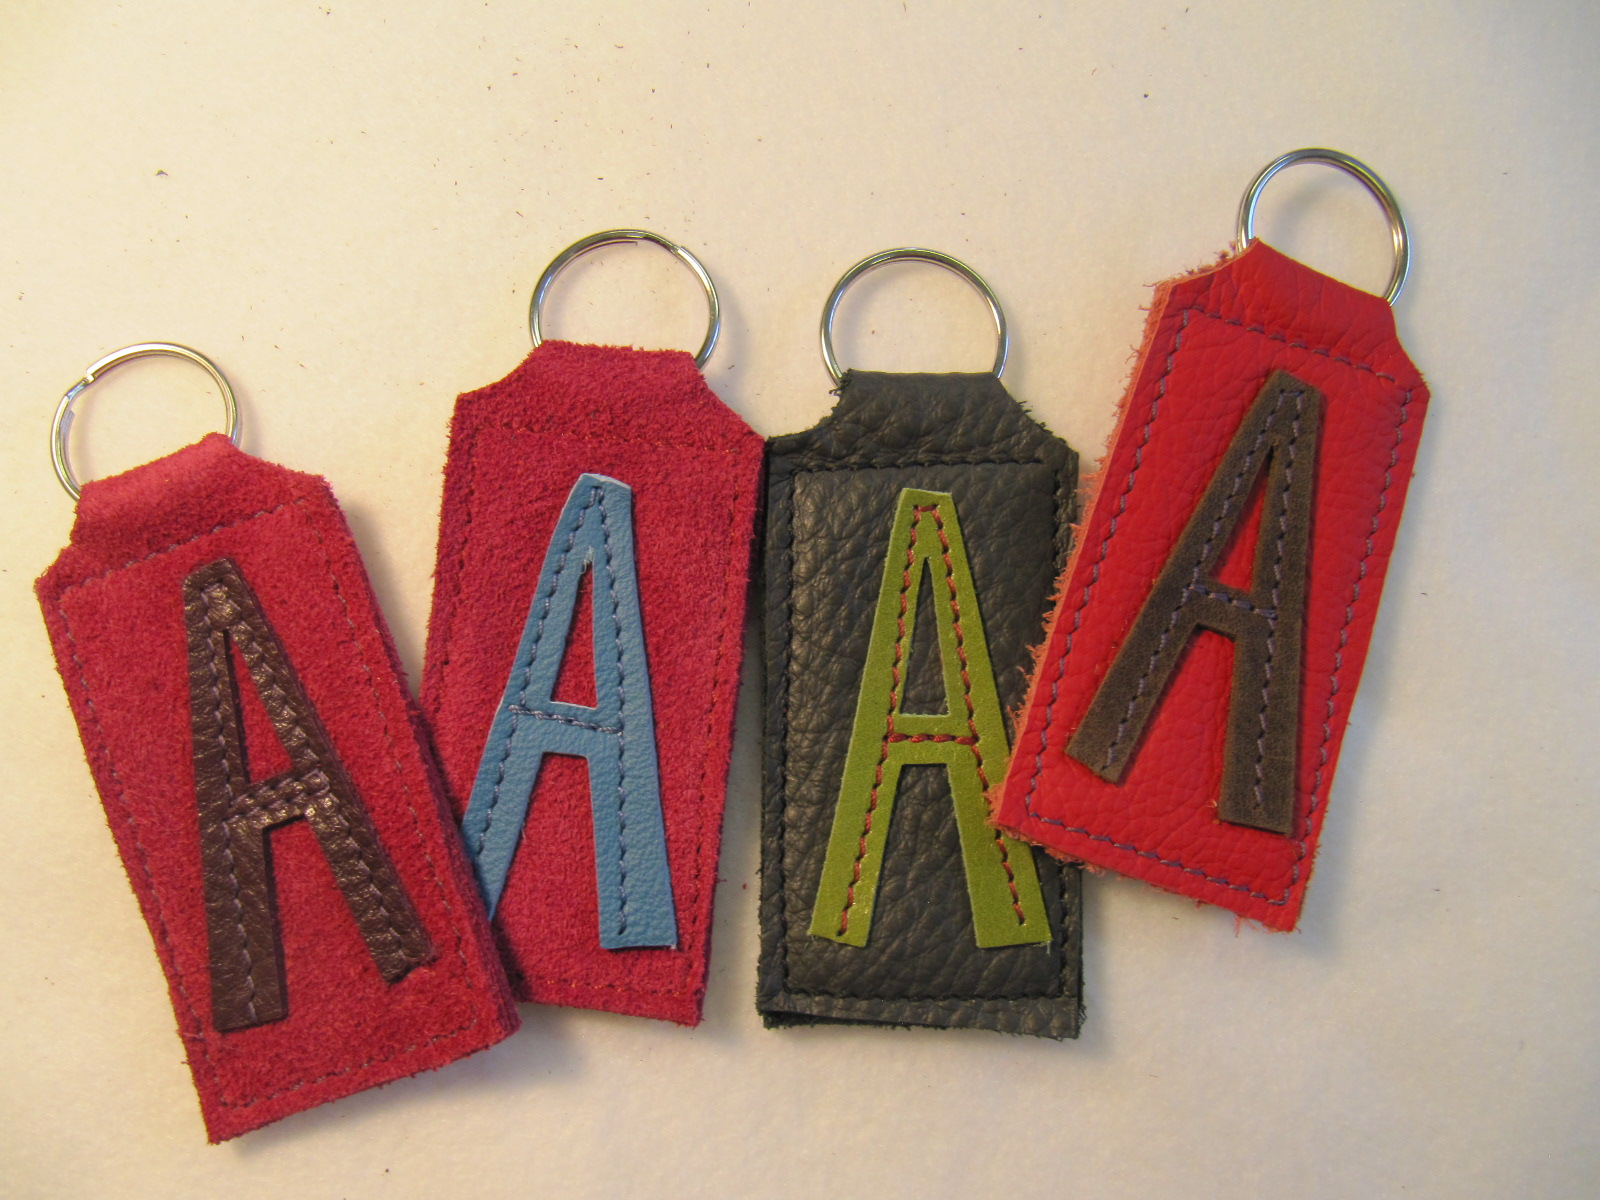 Initial Leather key fobs 'A'